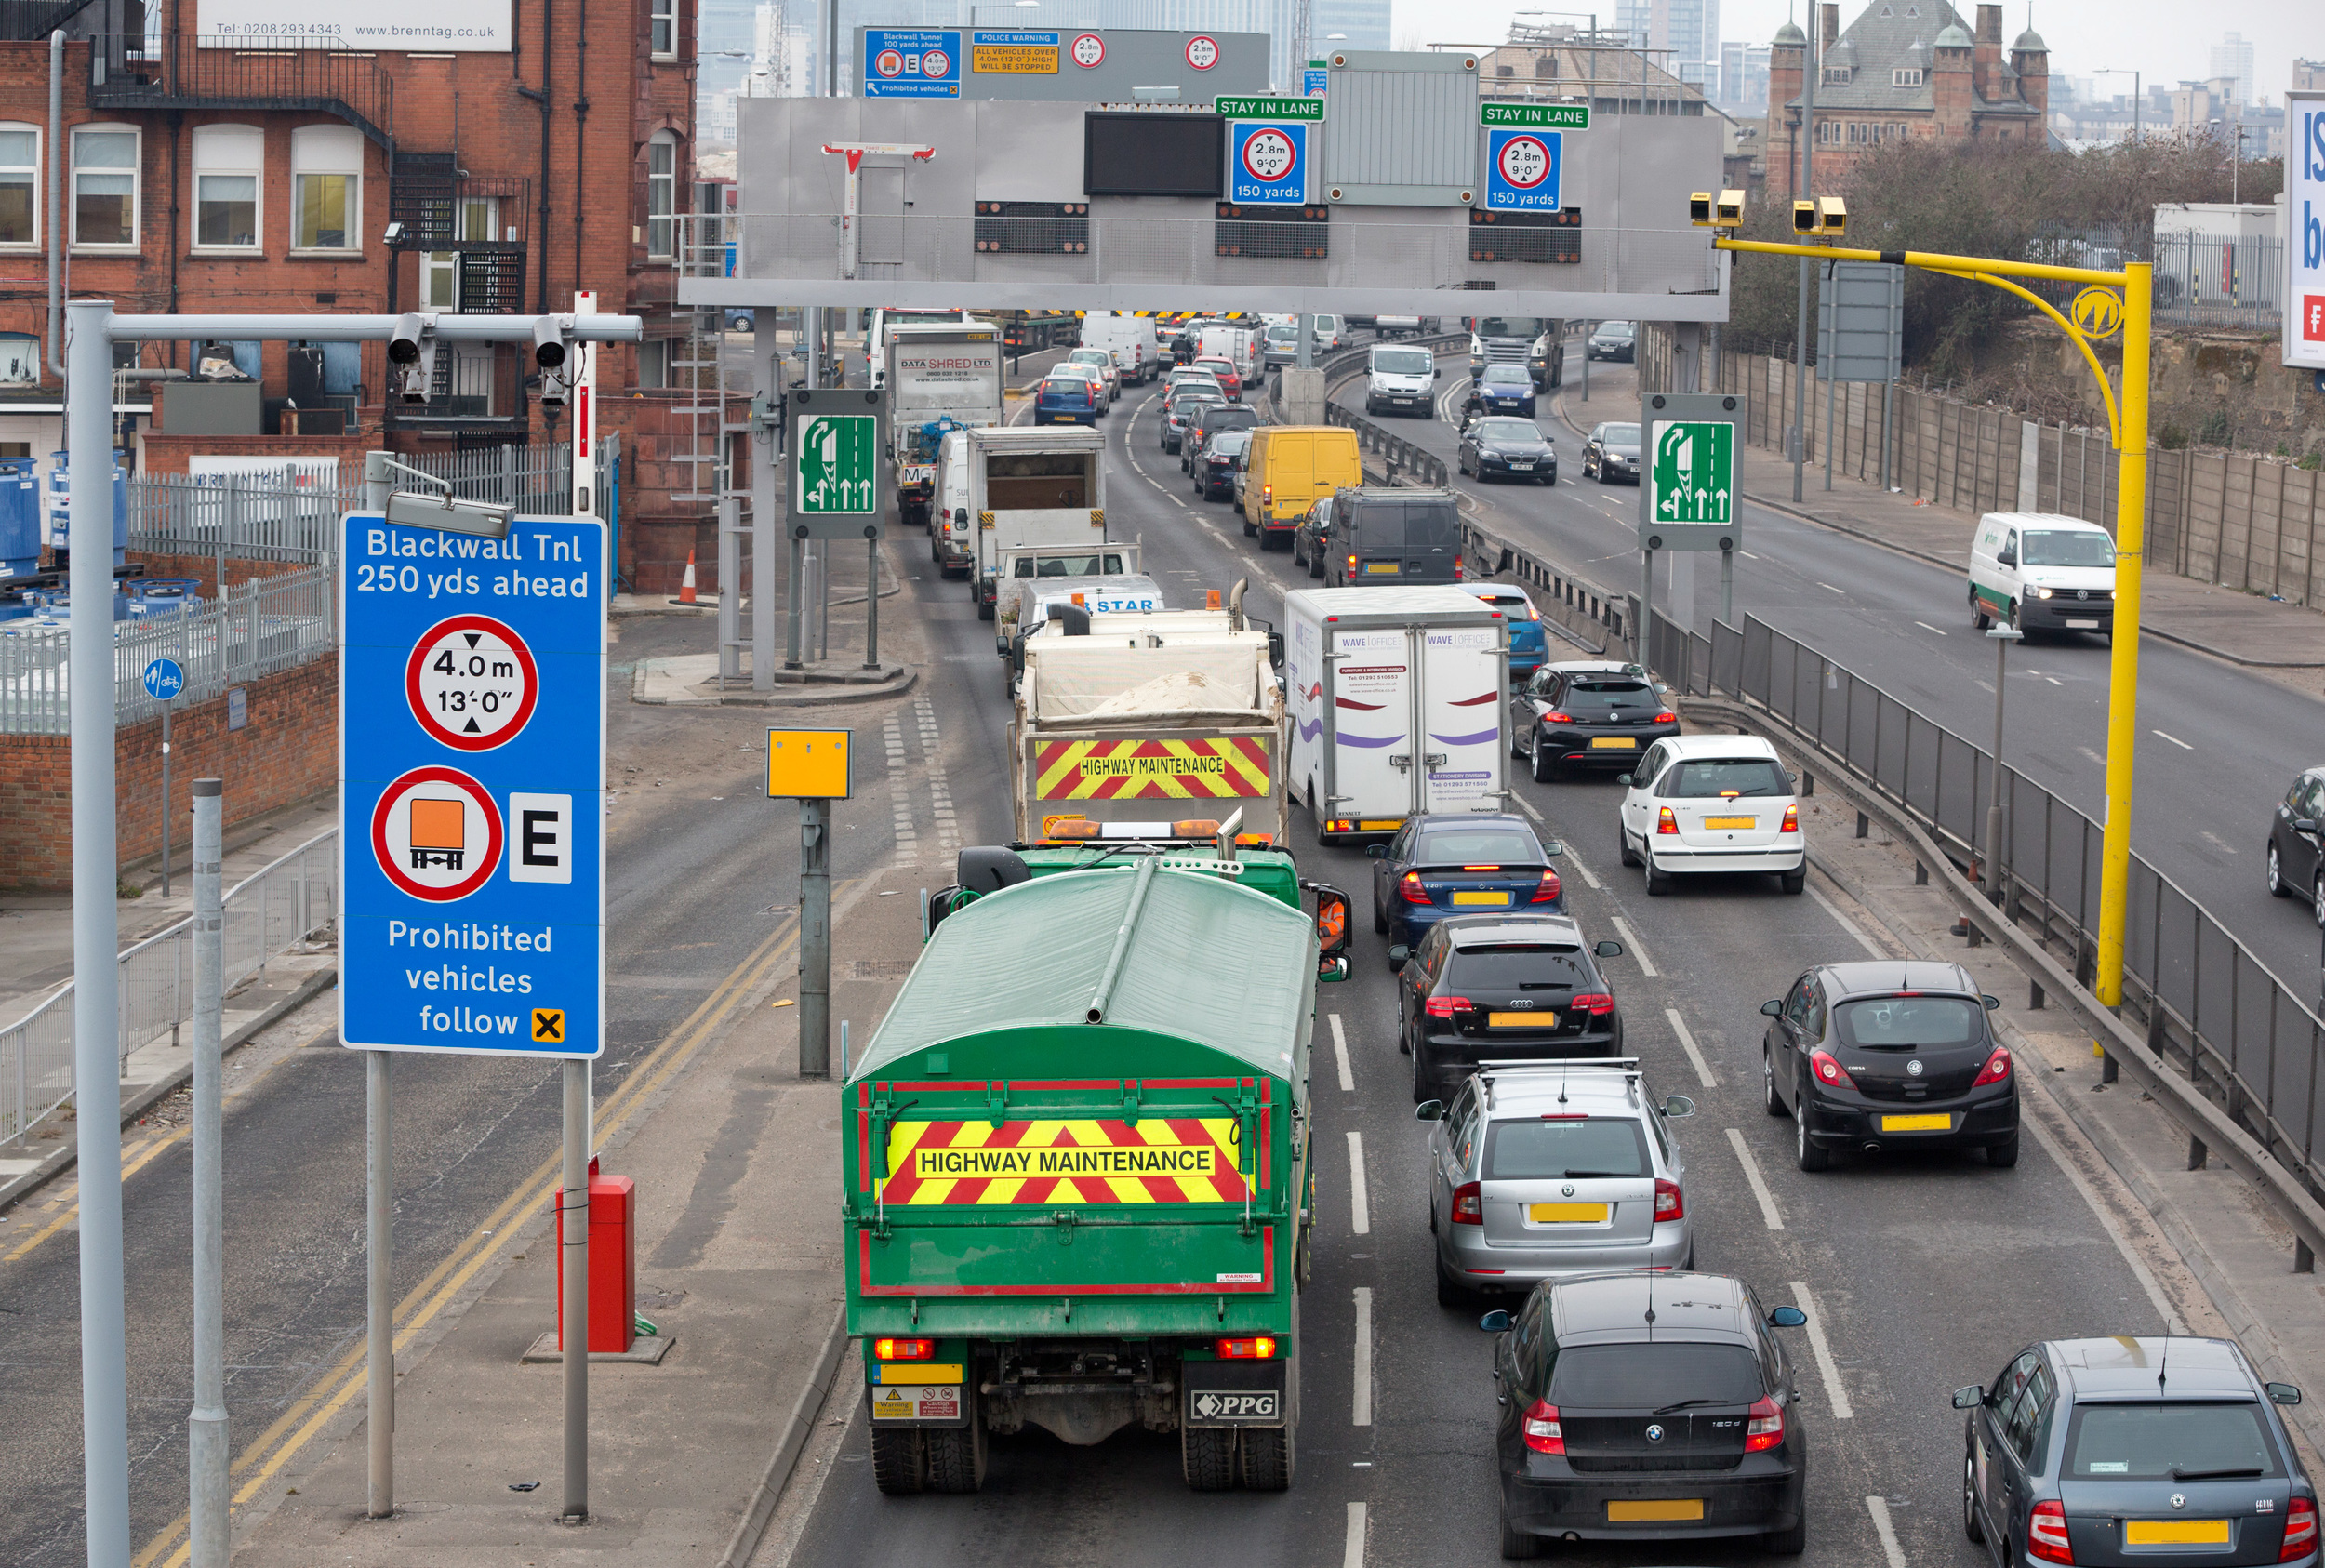 TfL propose the new Silvertown Tunnelto ease congestion at the existing Blackwall Tunnel